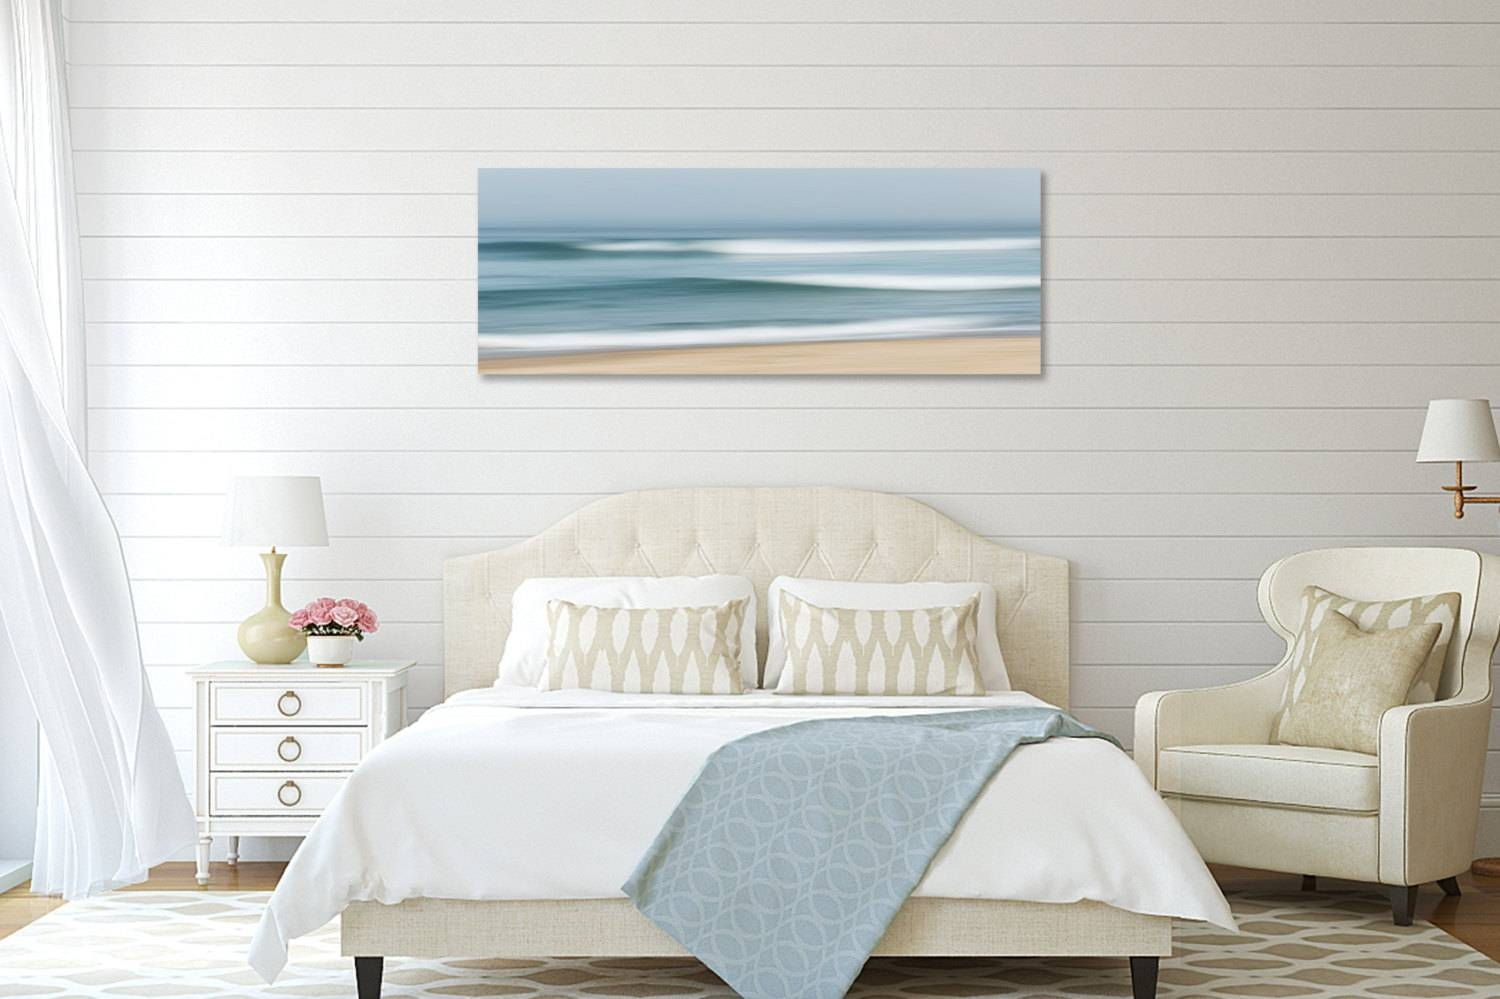 Large Abstract Beach Canvas Wall Art Ocean Seascape Intended For Most Up To Date Nautical Canvas Wall Art (View 10 of 20)